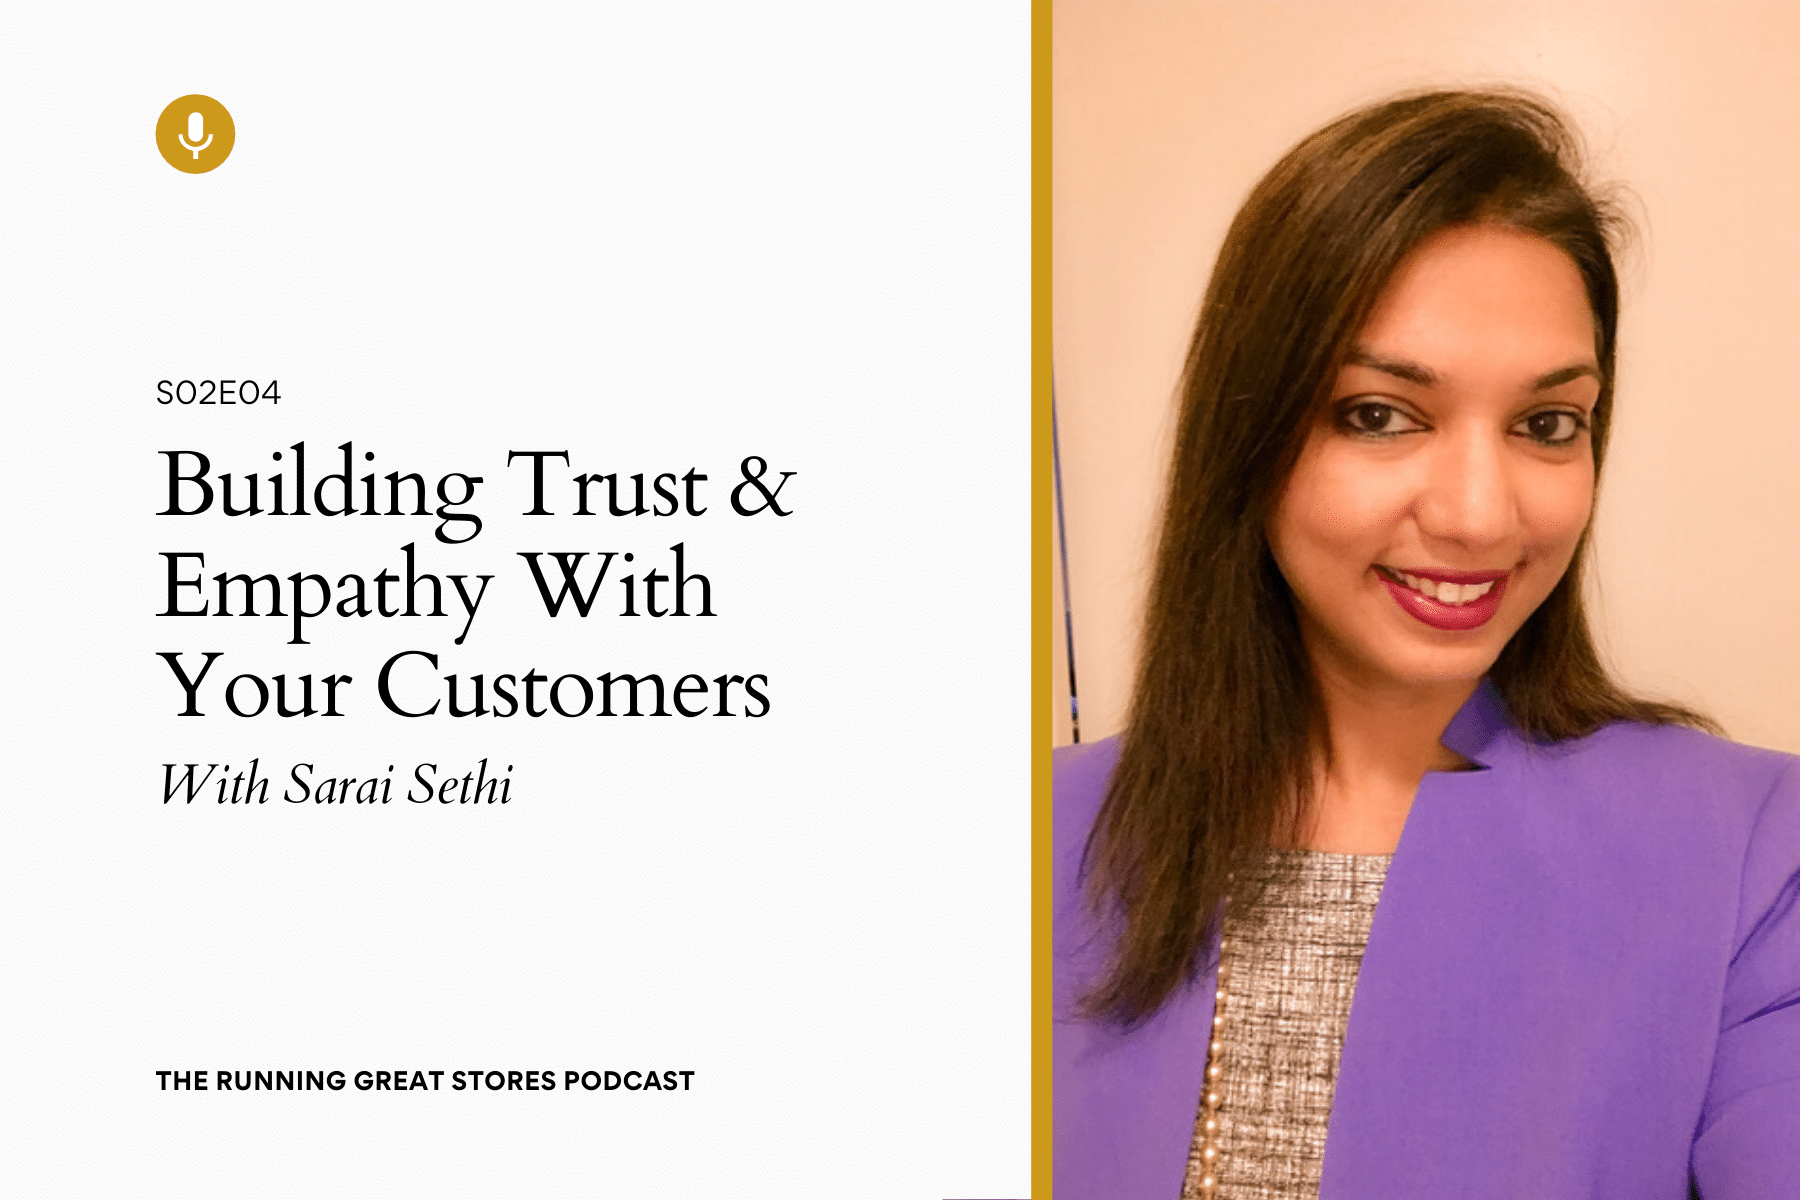 Building Trust and Empathy With Your Customers